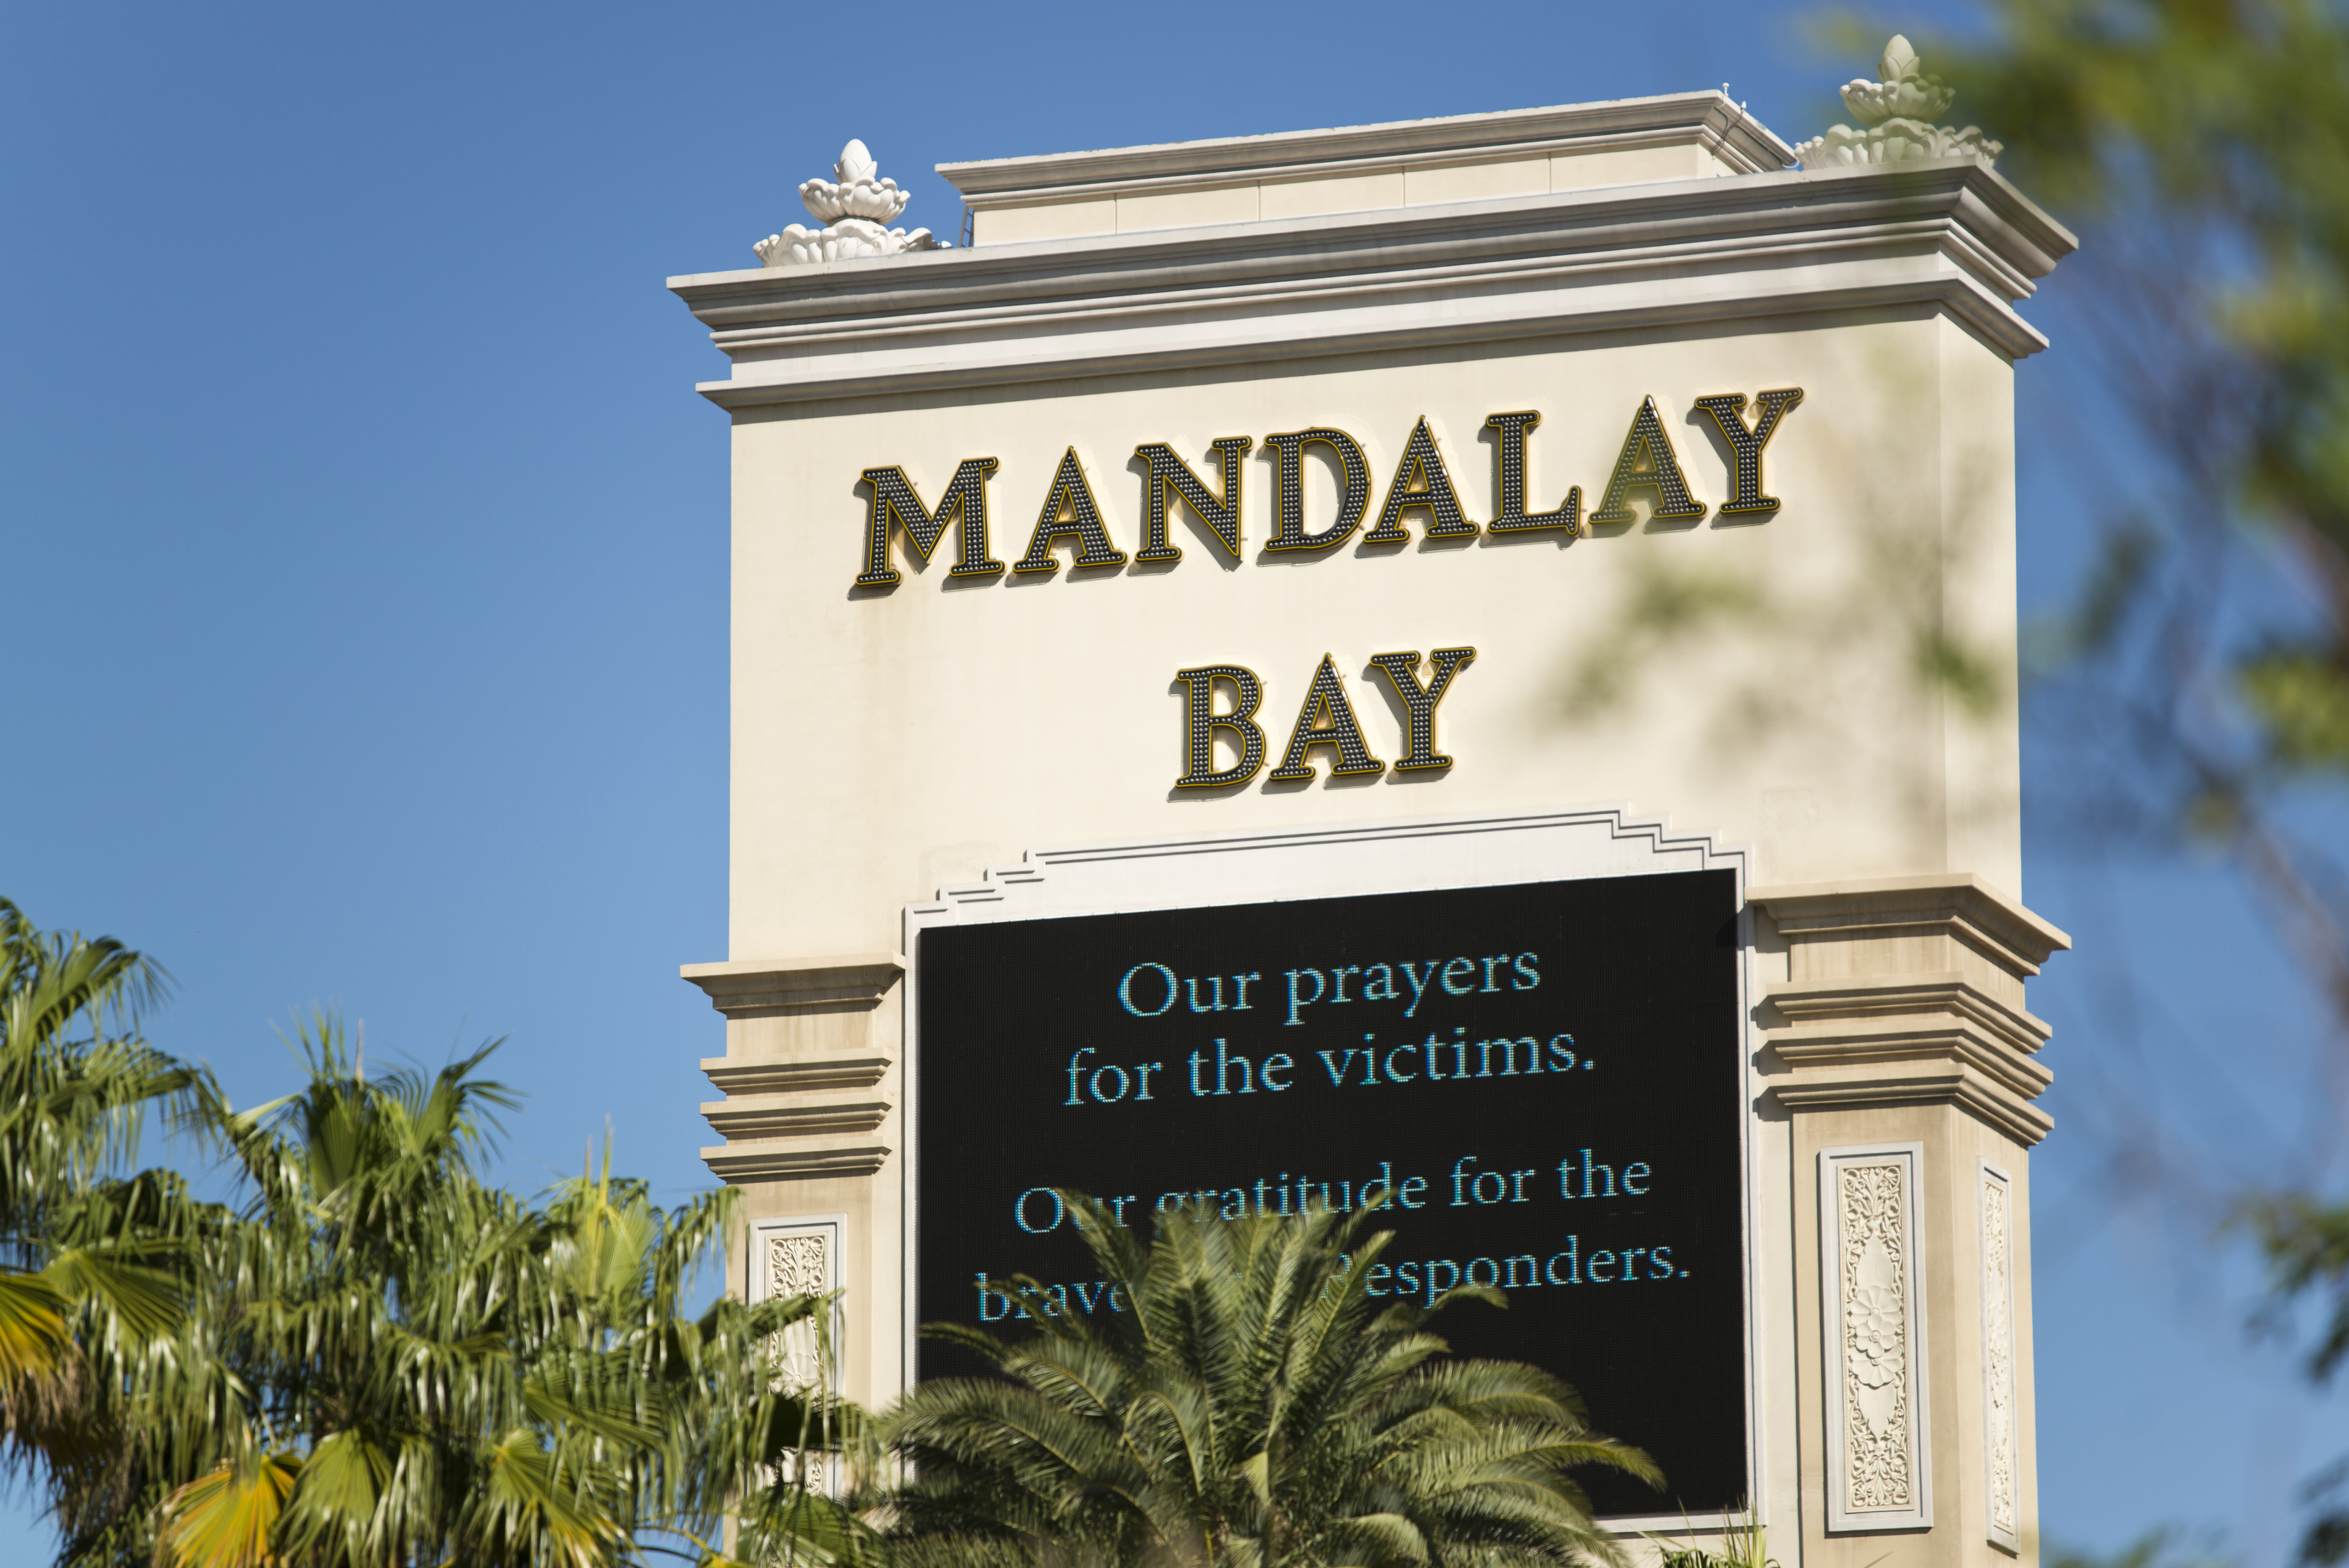 The Mandalay Bay sign on the Las Vegas Strip